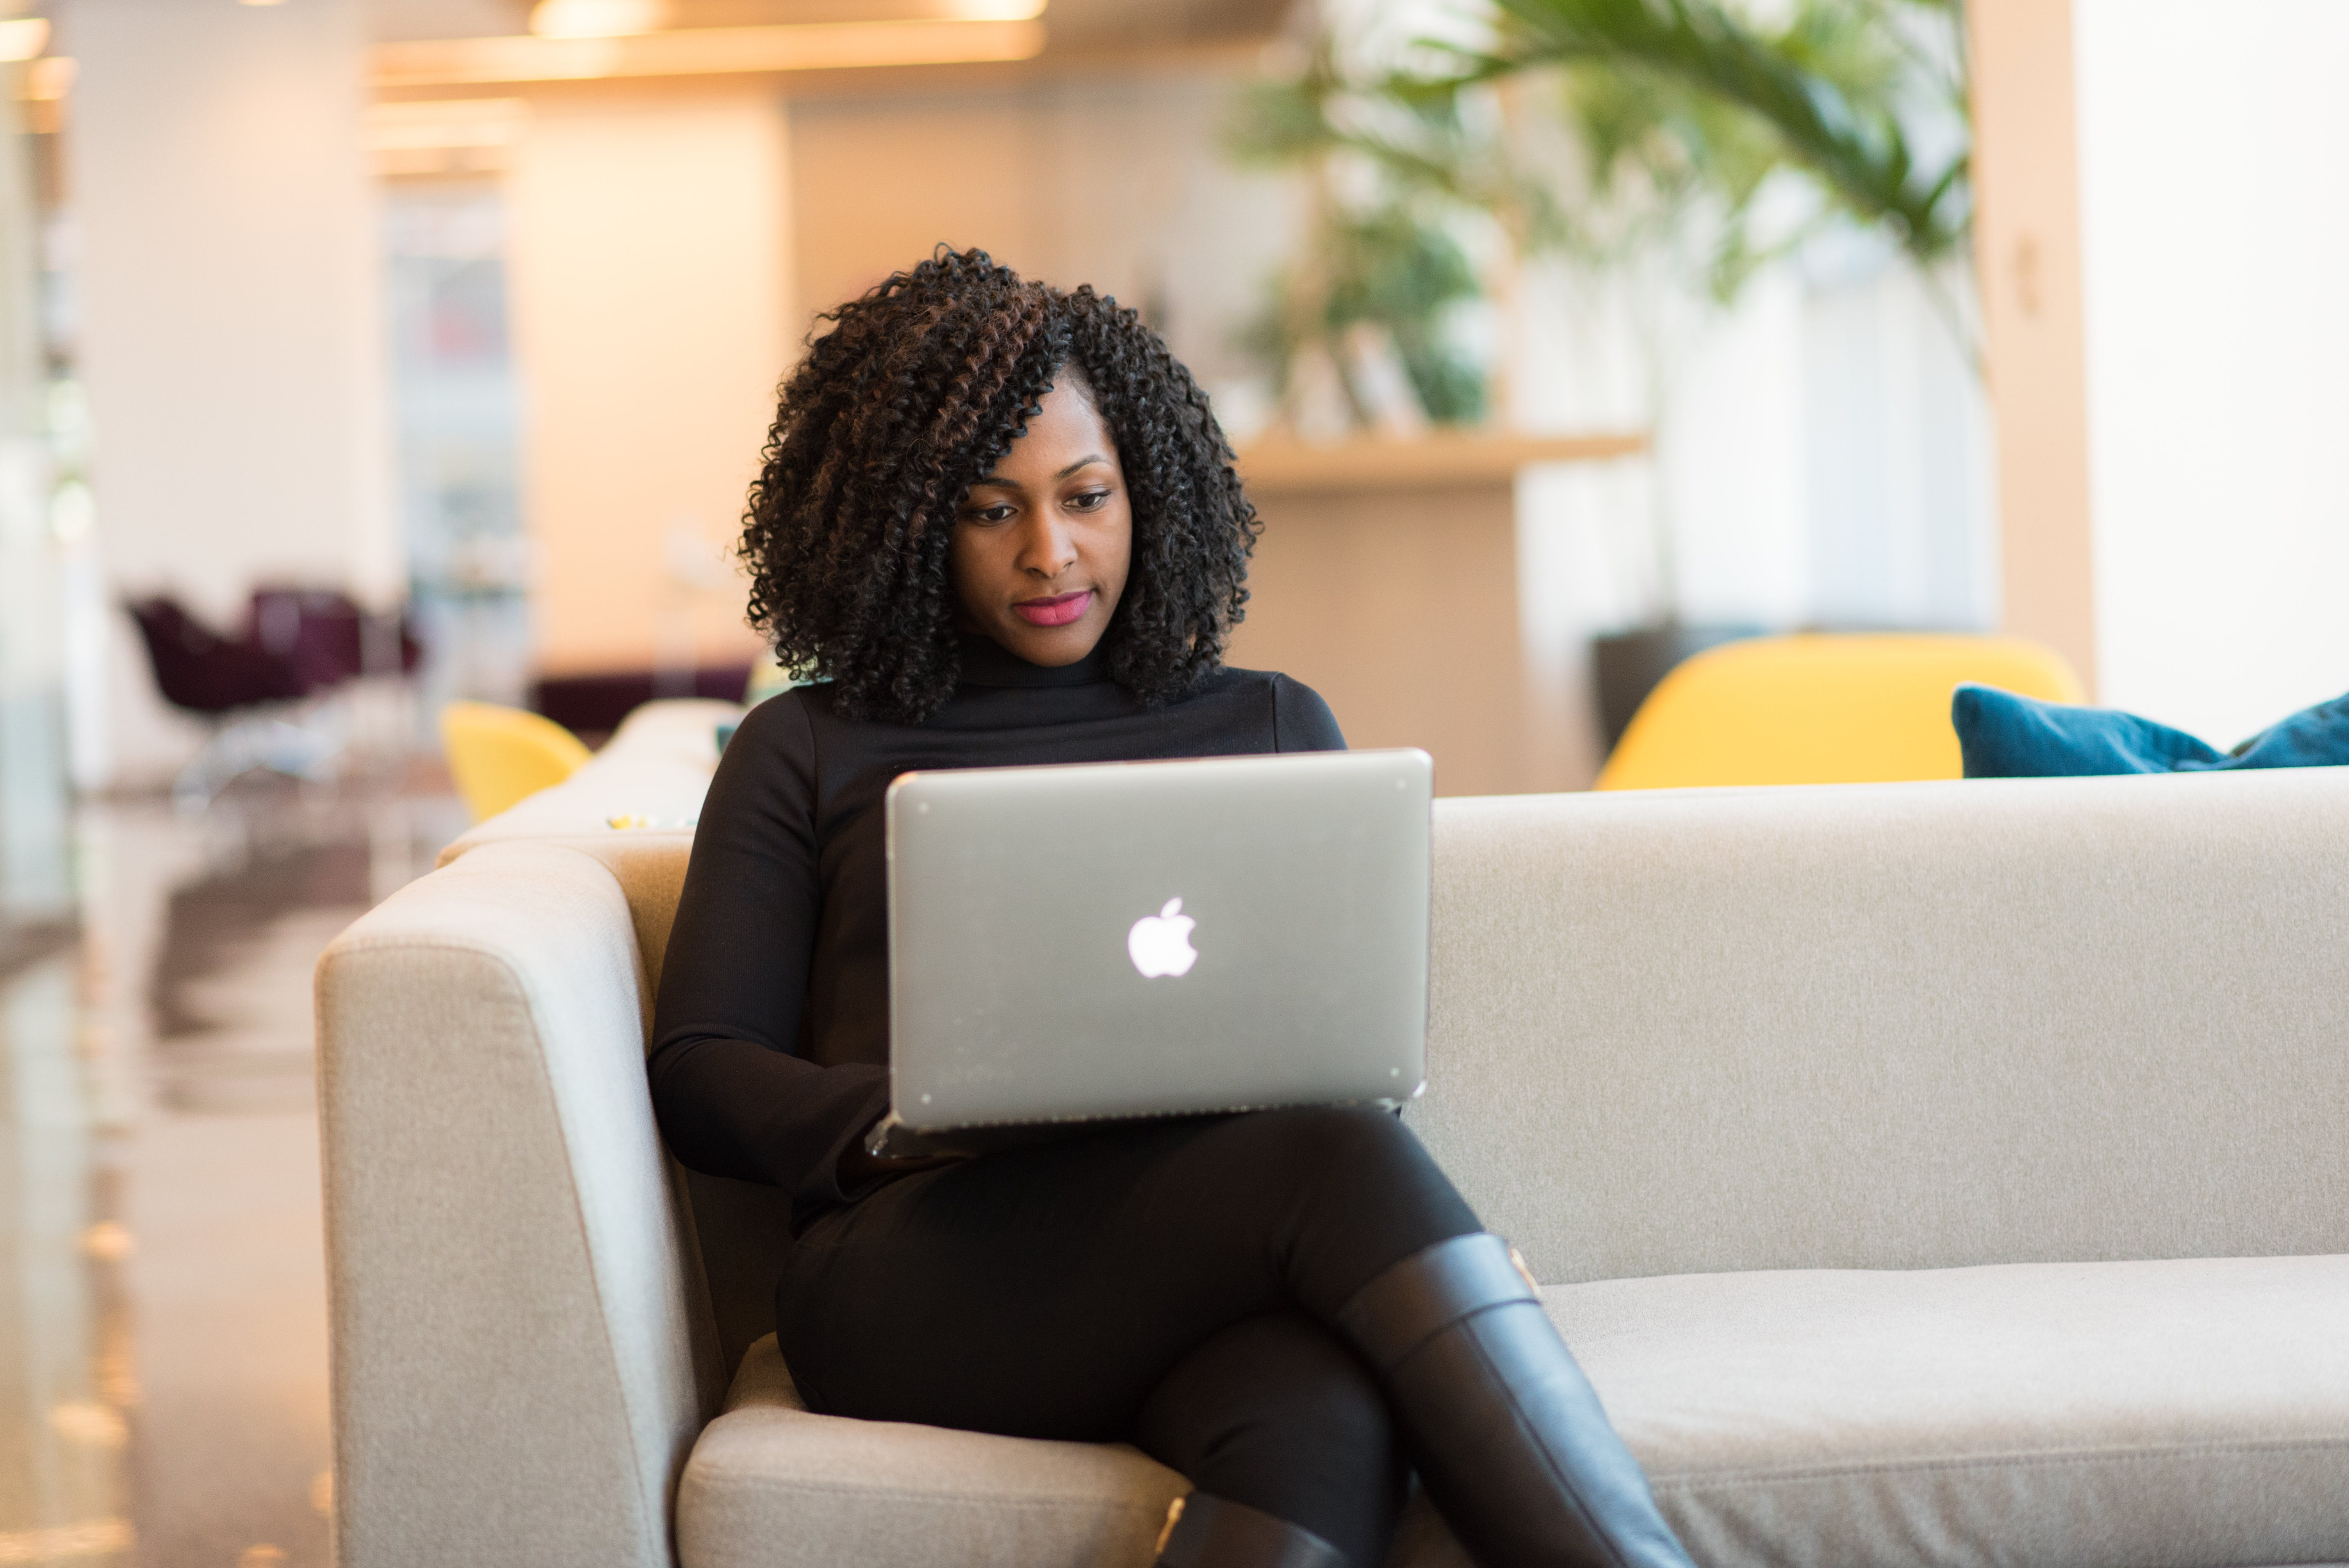 Woman Using Macbook Sitting on White Couch